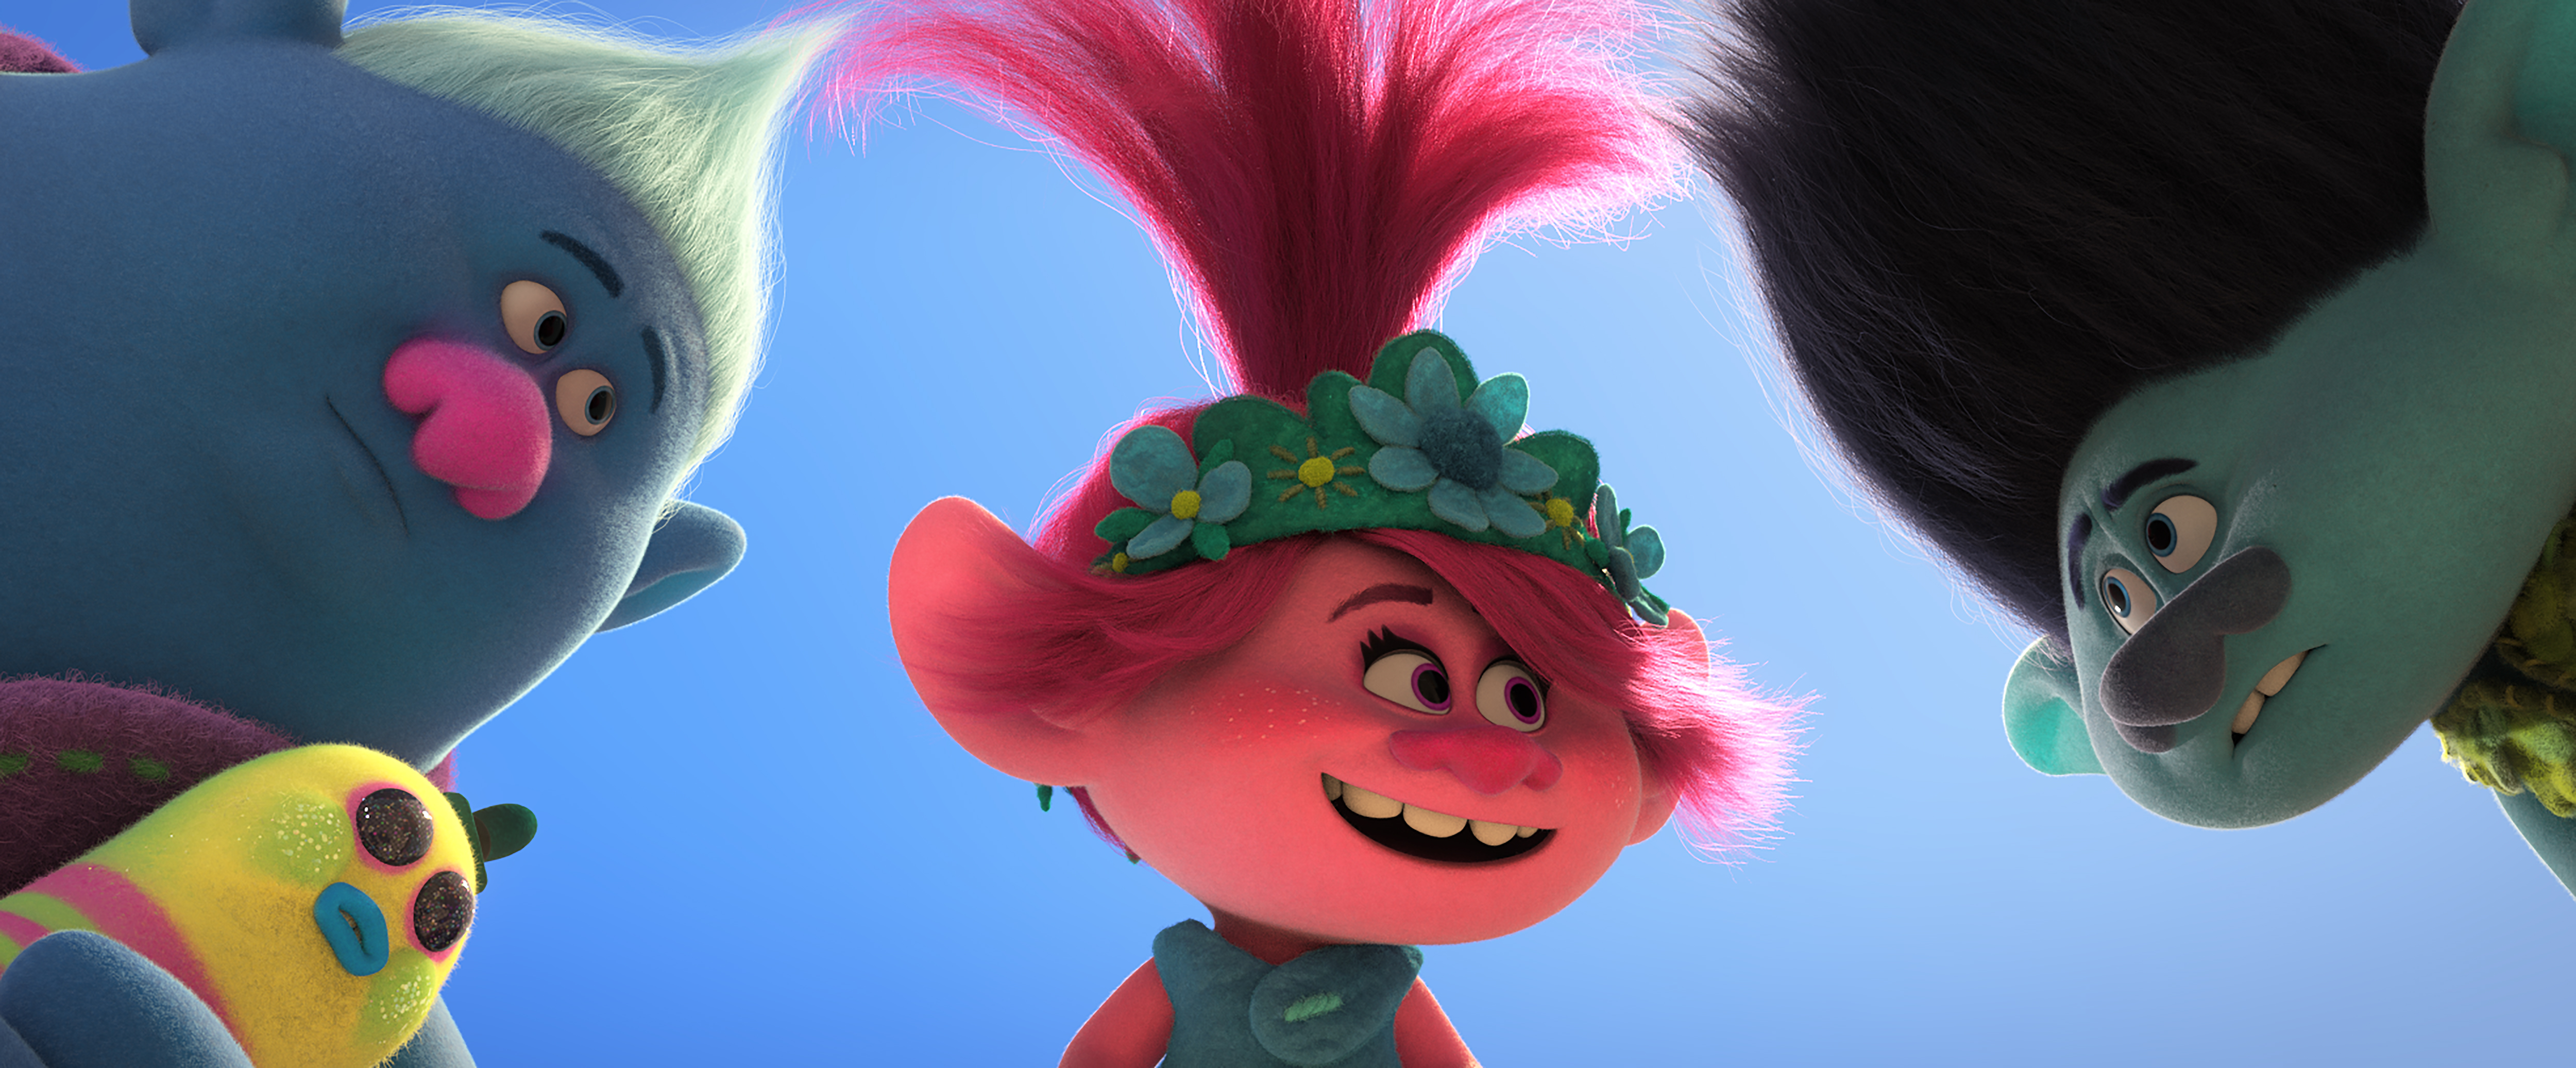 Trolls Christmas Special 2020 Trolls World Tour': Will The Movie Profit Off Universal's VOD